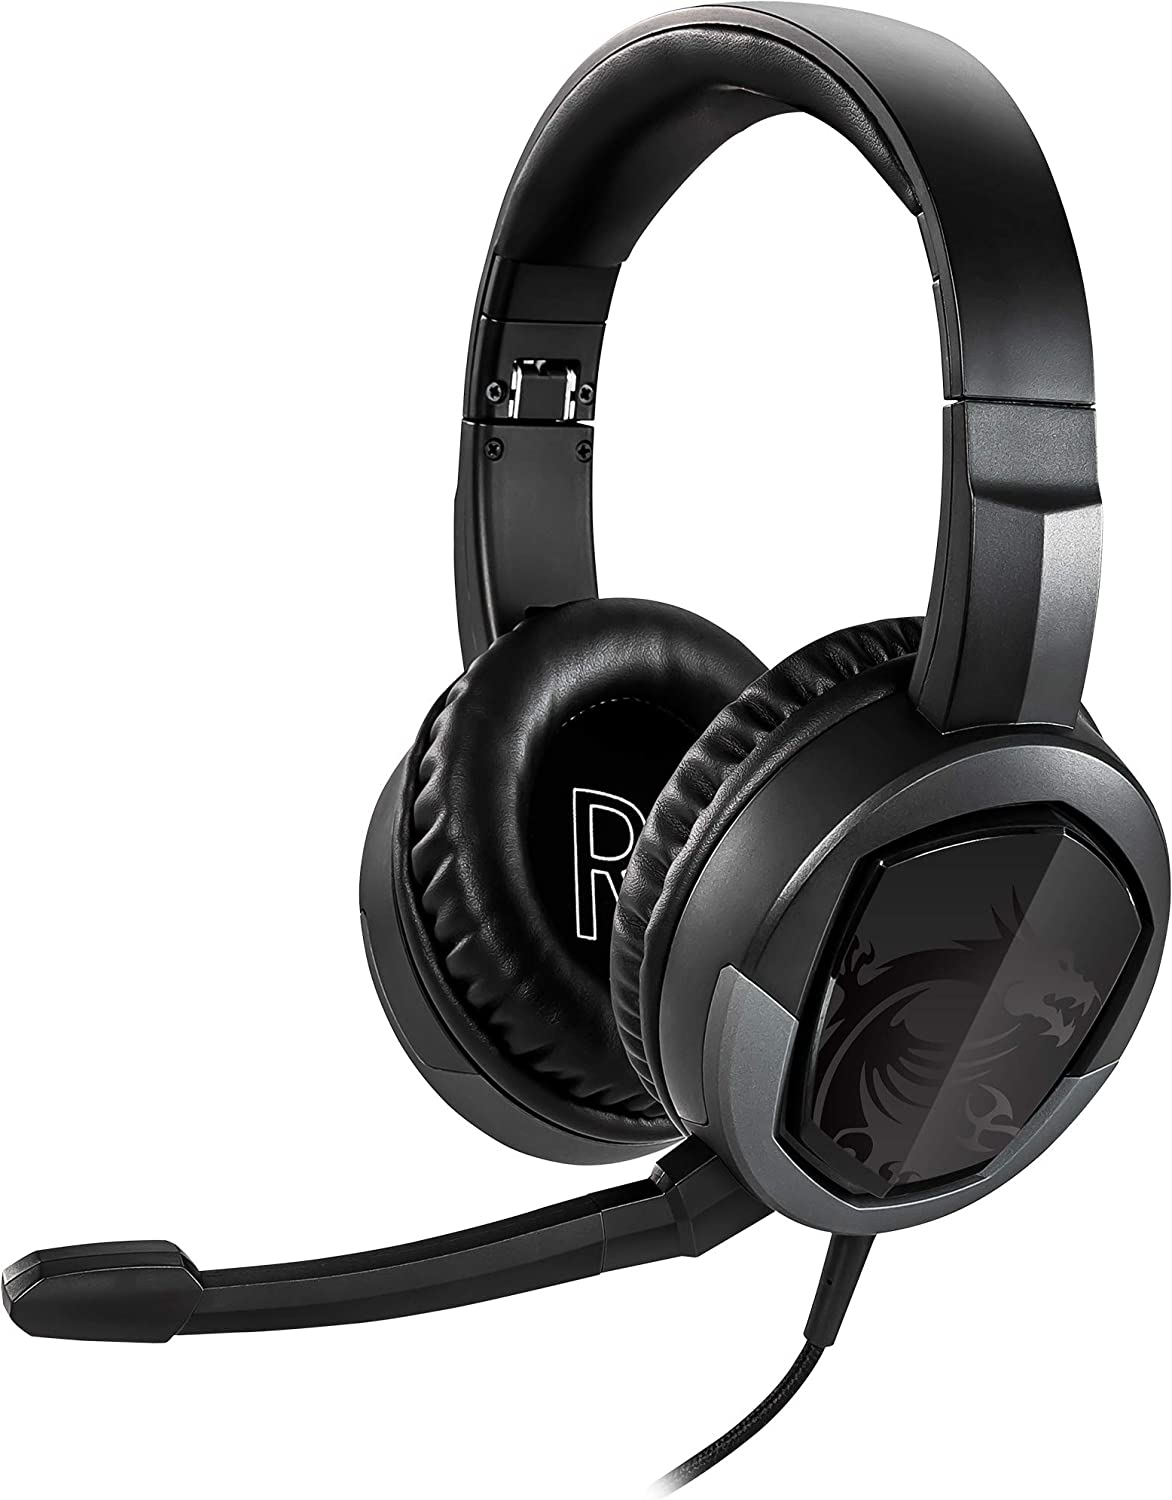 MSI Gaming Detachable Microphone Lightweight and Foldable Headband Design 7.1 Surround Sound Stereo Gaming Headphone (Immerse GH30 V2), Black, Large